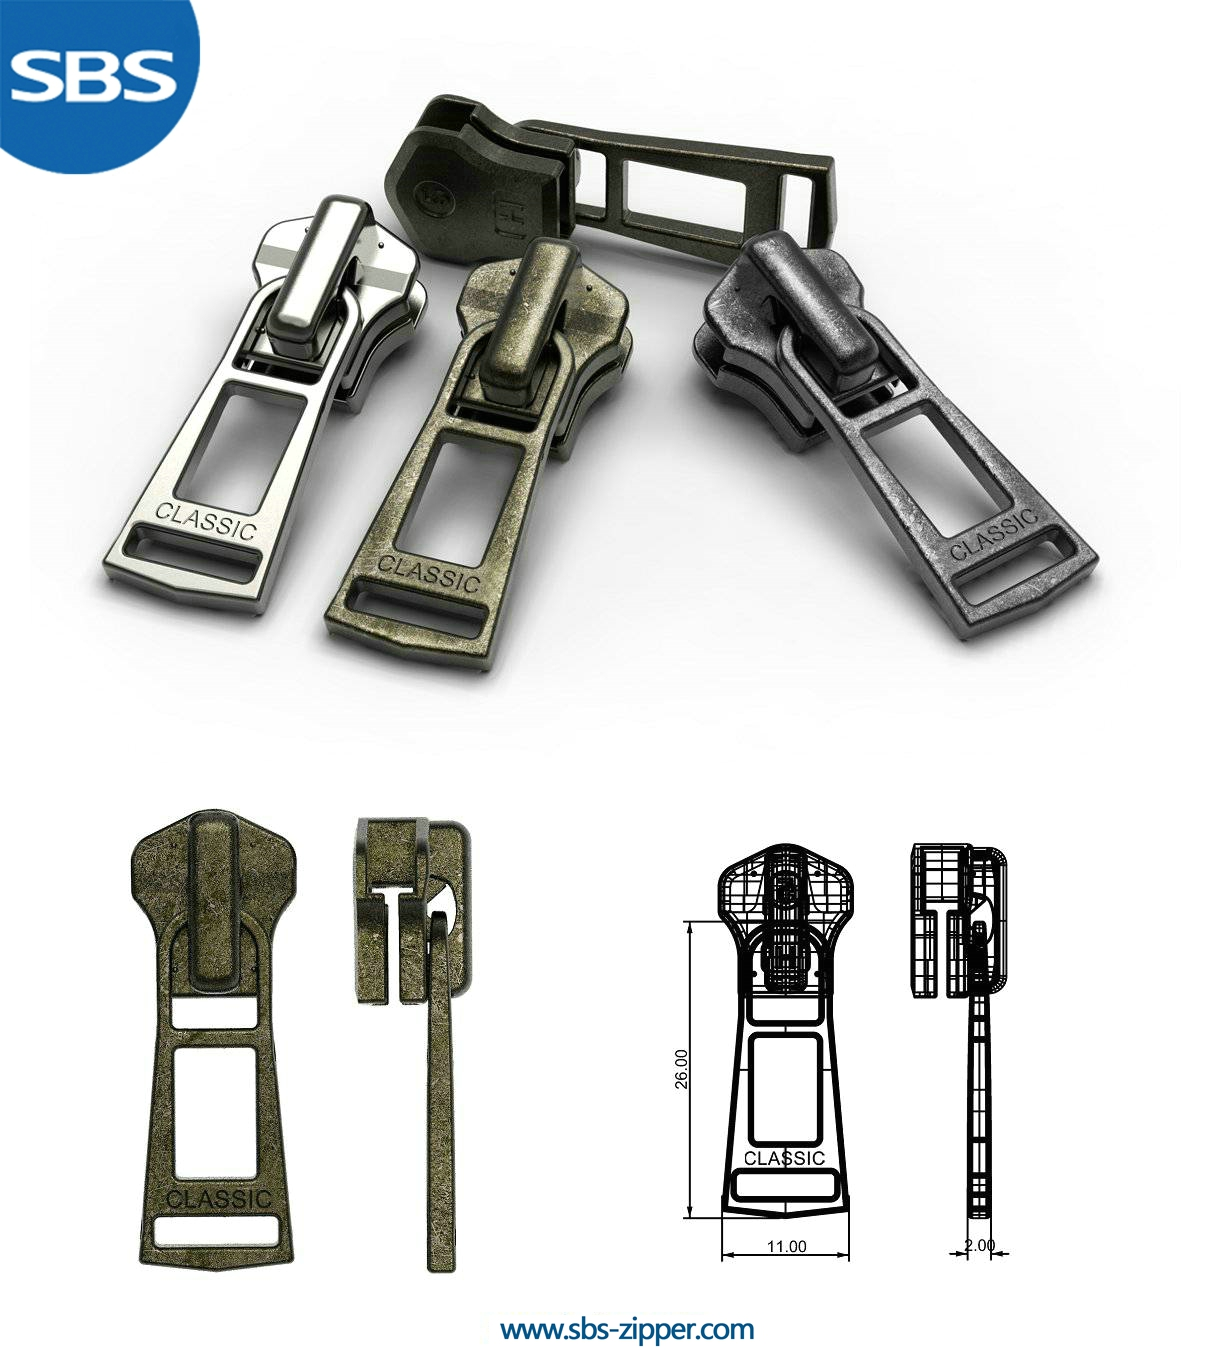 Zipper Puller Design Manufacturer 16AMC006 | SBS Zipper